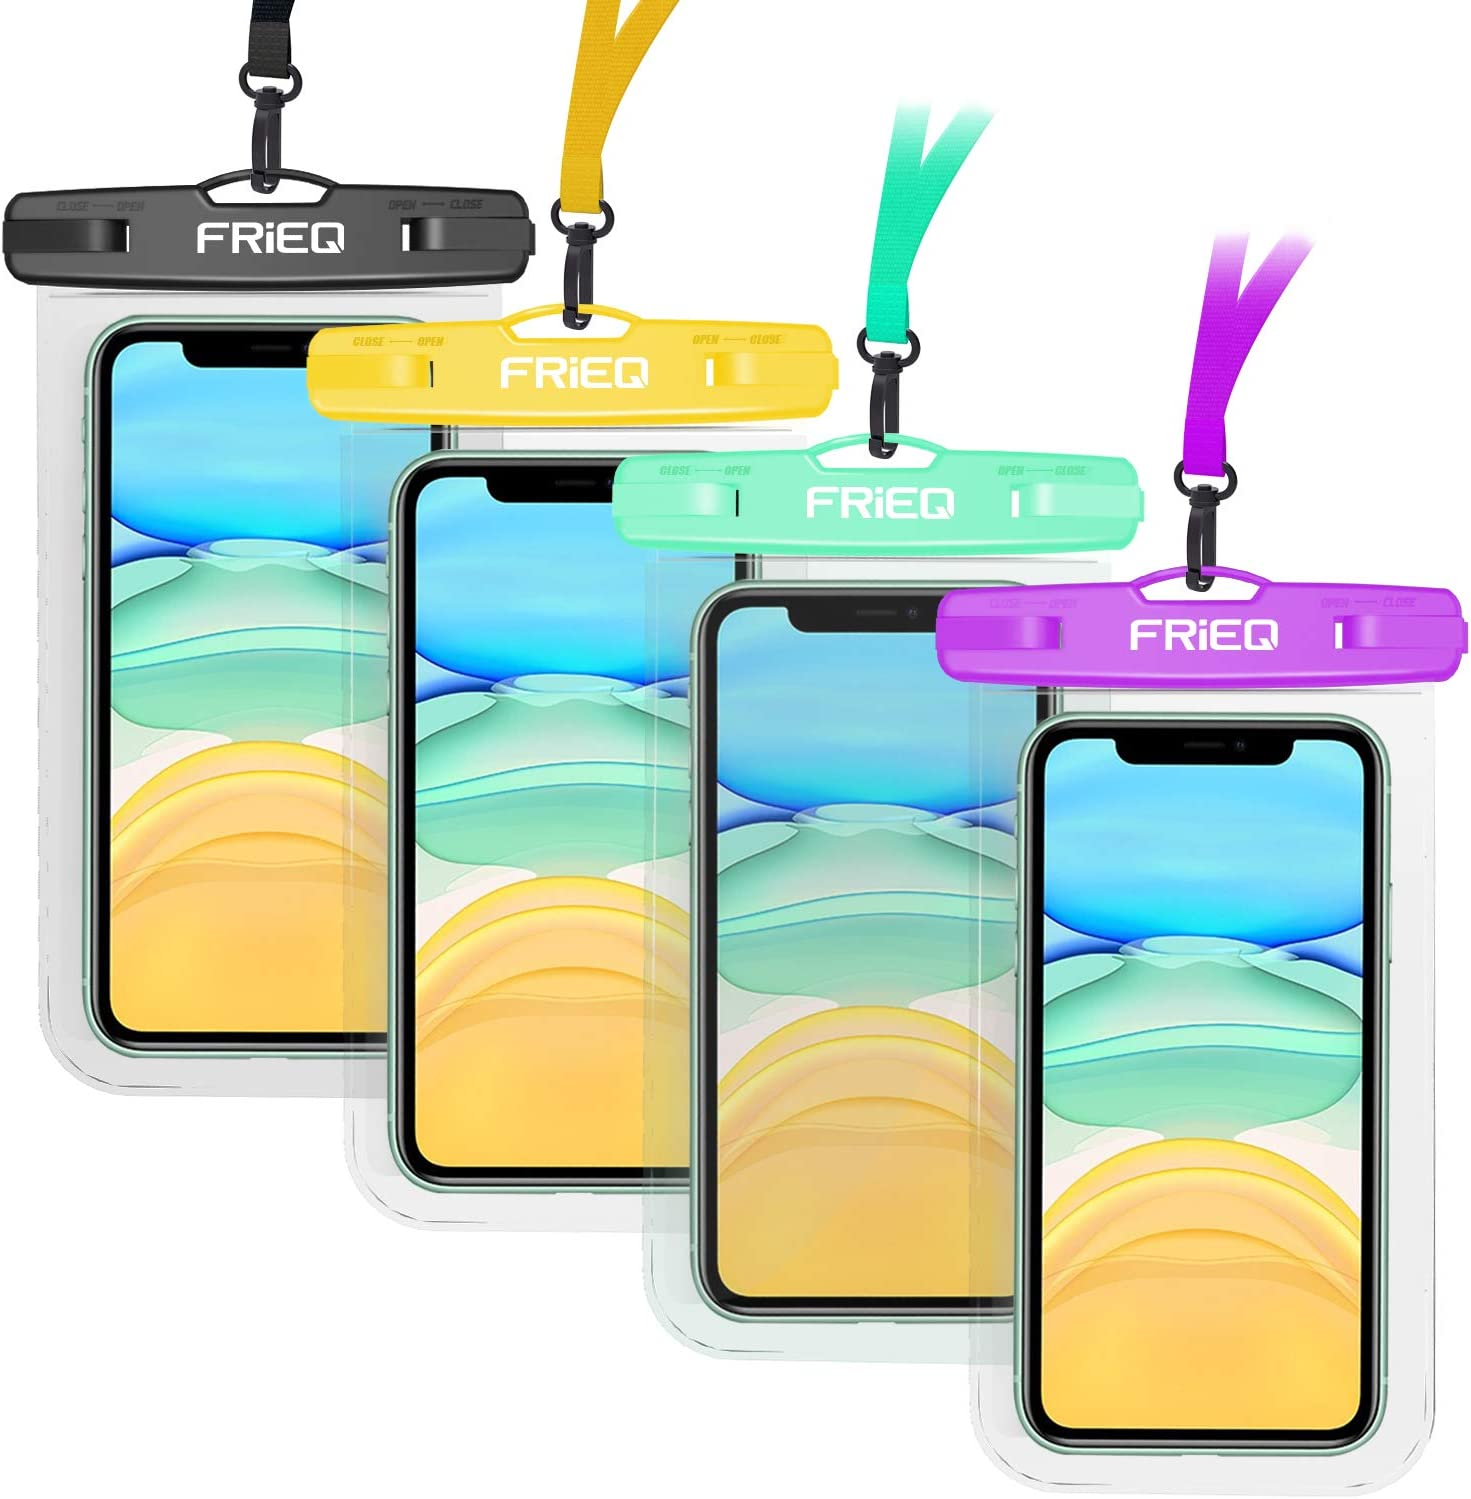 FRiEQ Universal Waterproof Case, 4 Pack Waterproof Phone Pouch Underwater IPX8 Dry Bag Compatible iPhone 12/12 Pro Max/11/11 Pro/SE/Xs Max/XR/8P/7 Galaxy up to 7